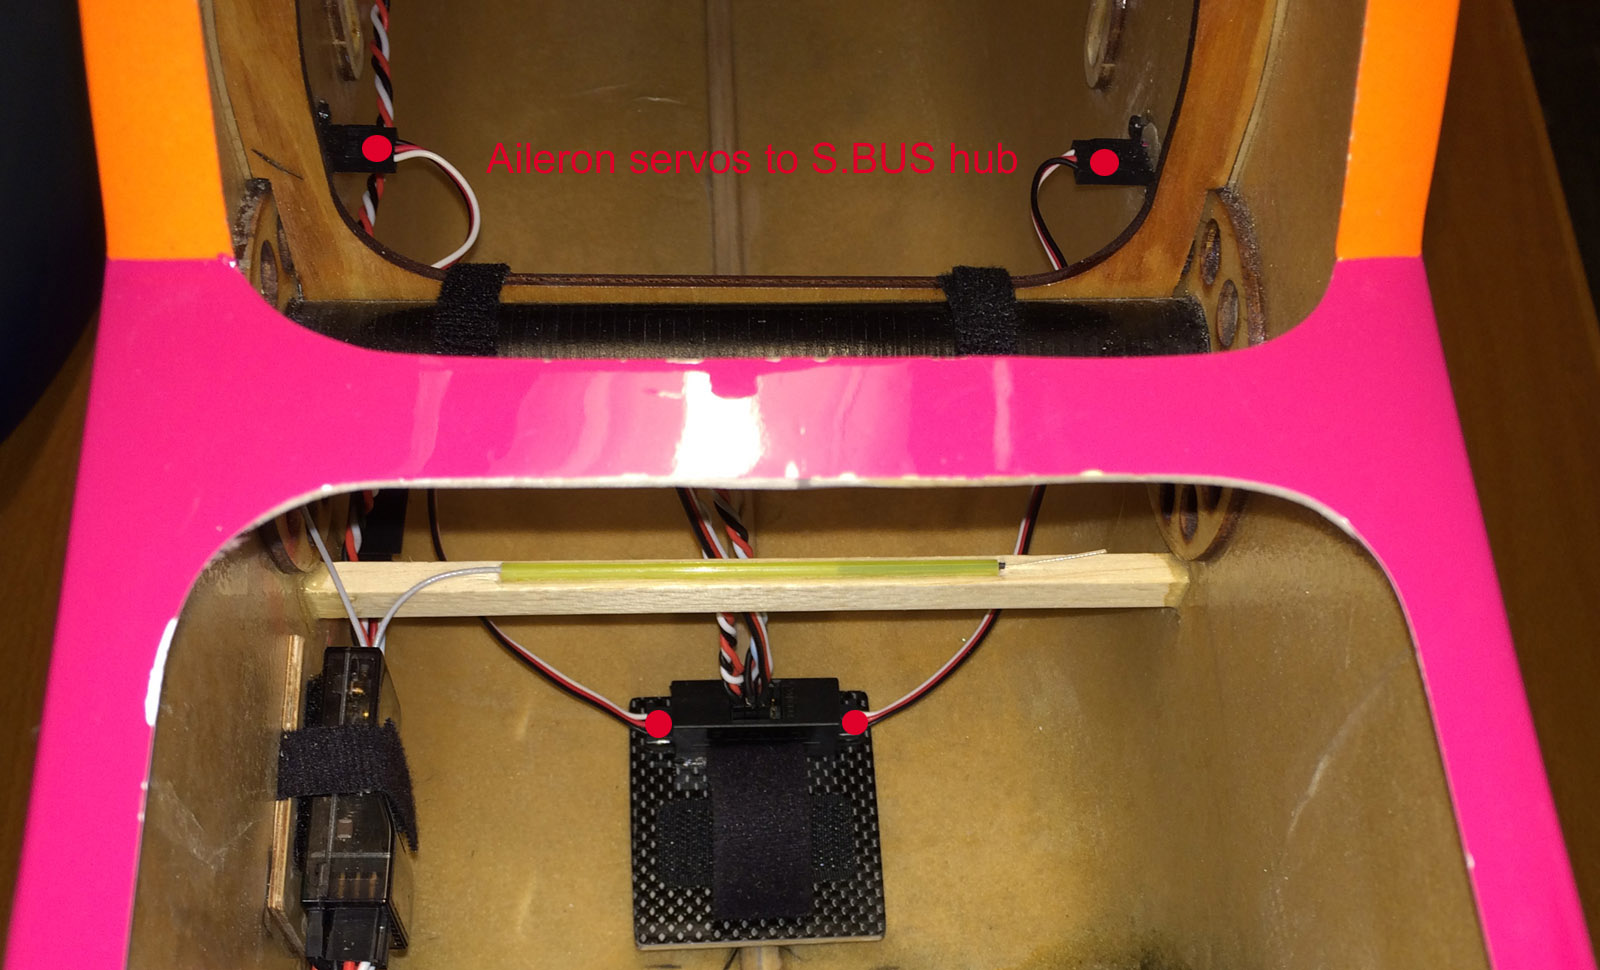 Click image for larger version  Name:002_d_Mounting_SBUS_hubs.JPG Views:1812 Size:245.9 KB ID:2160339